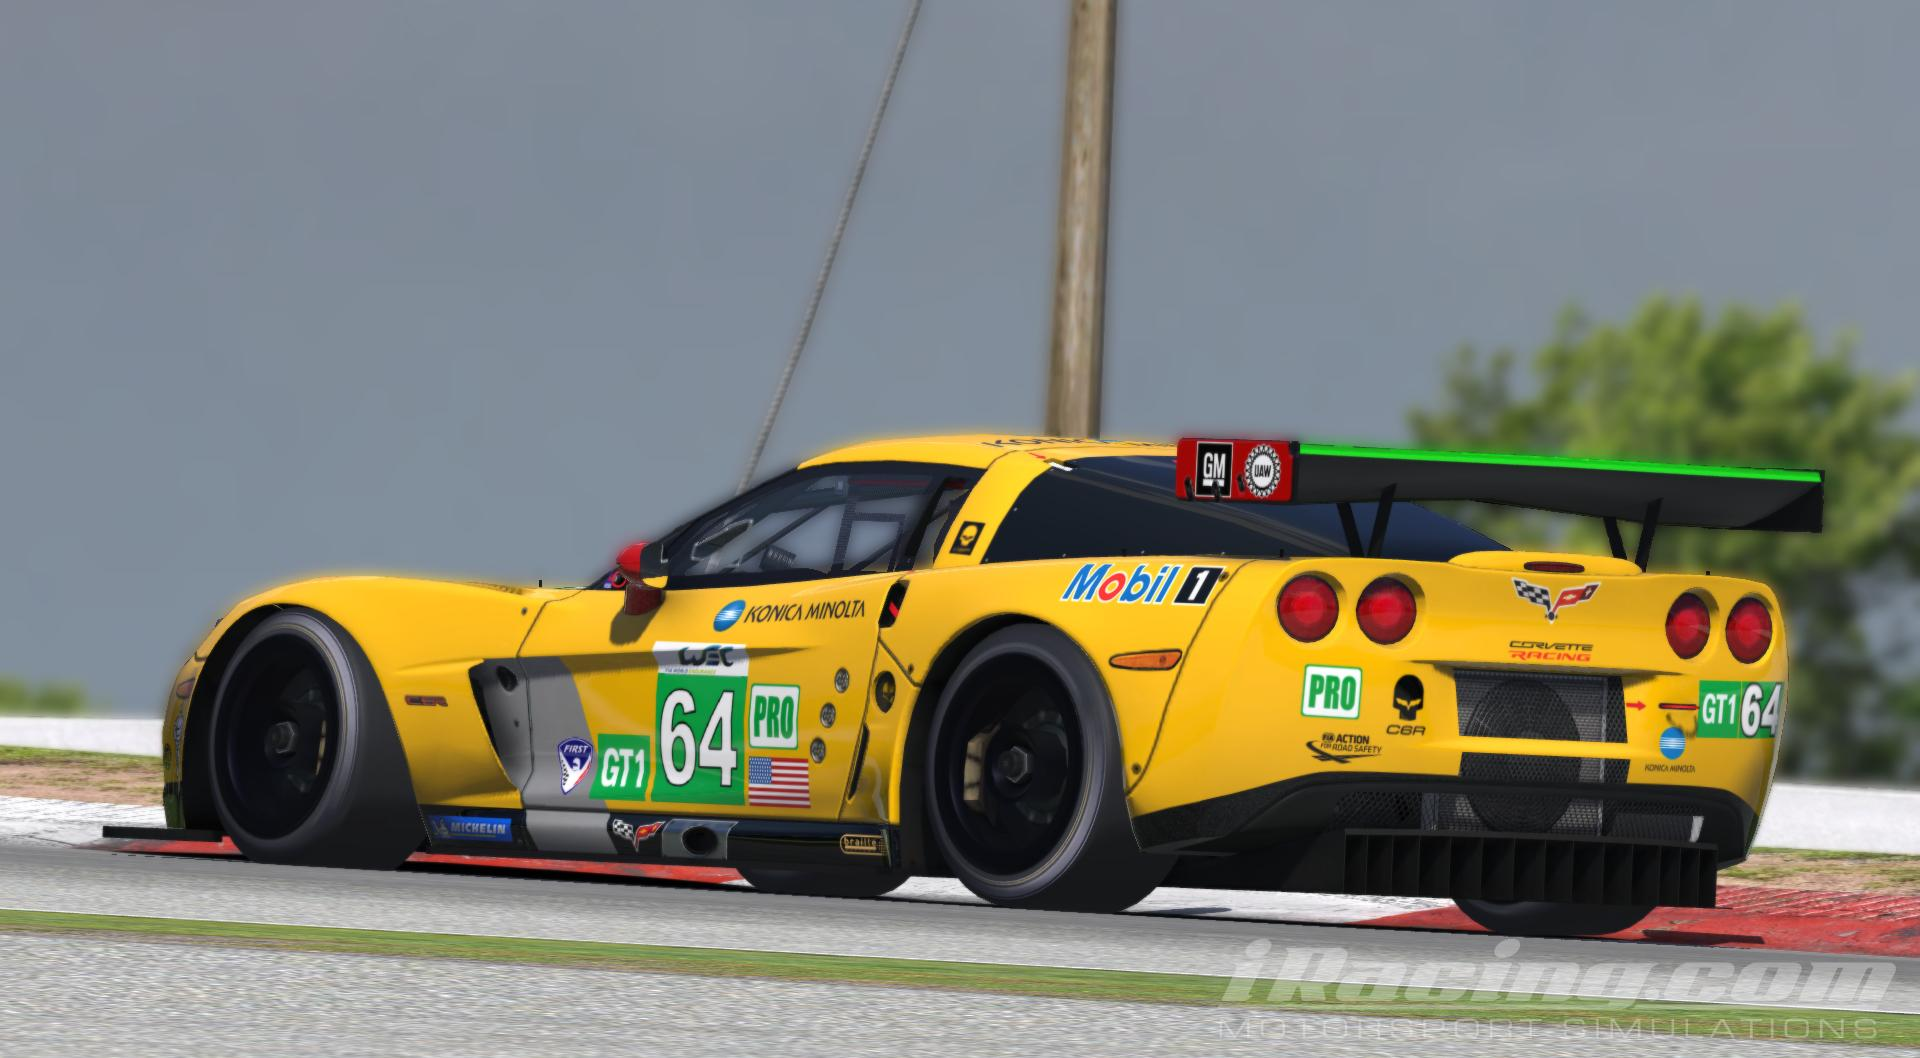 Preview of Corvette Racing 2015 Le mans winning livery. by Mika Eshuis